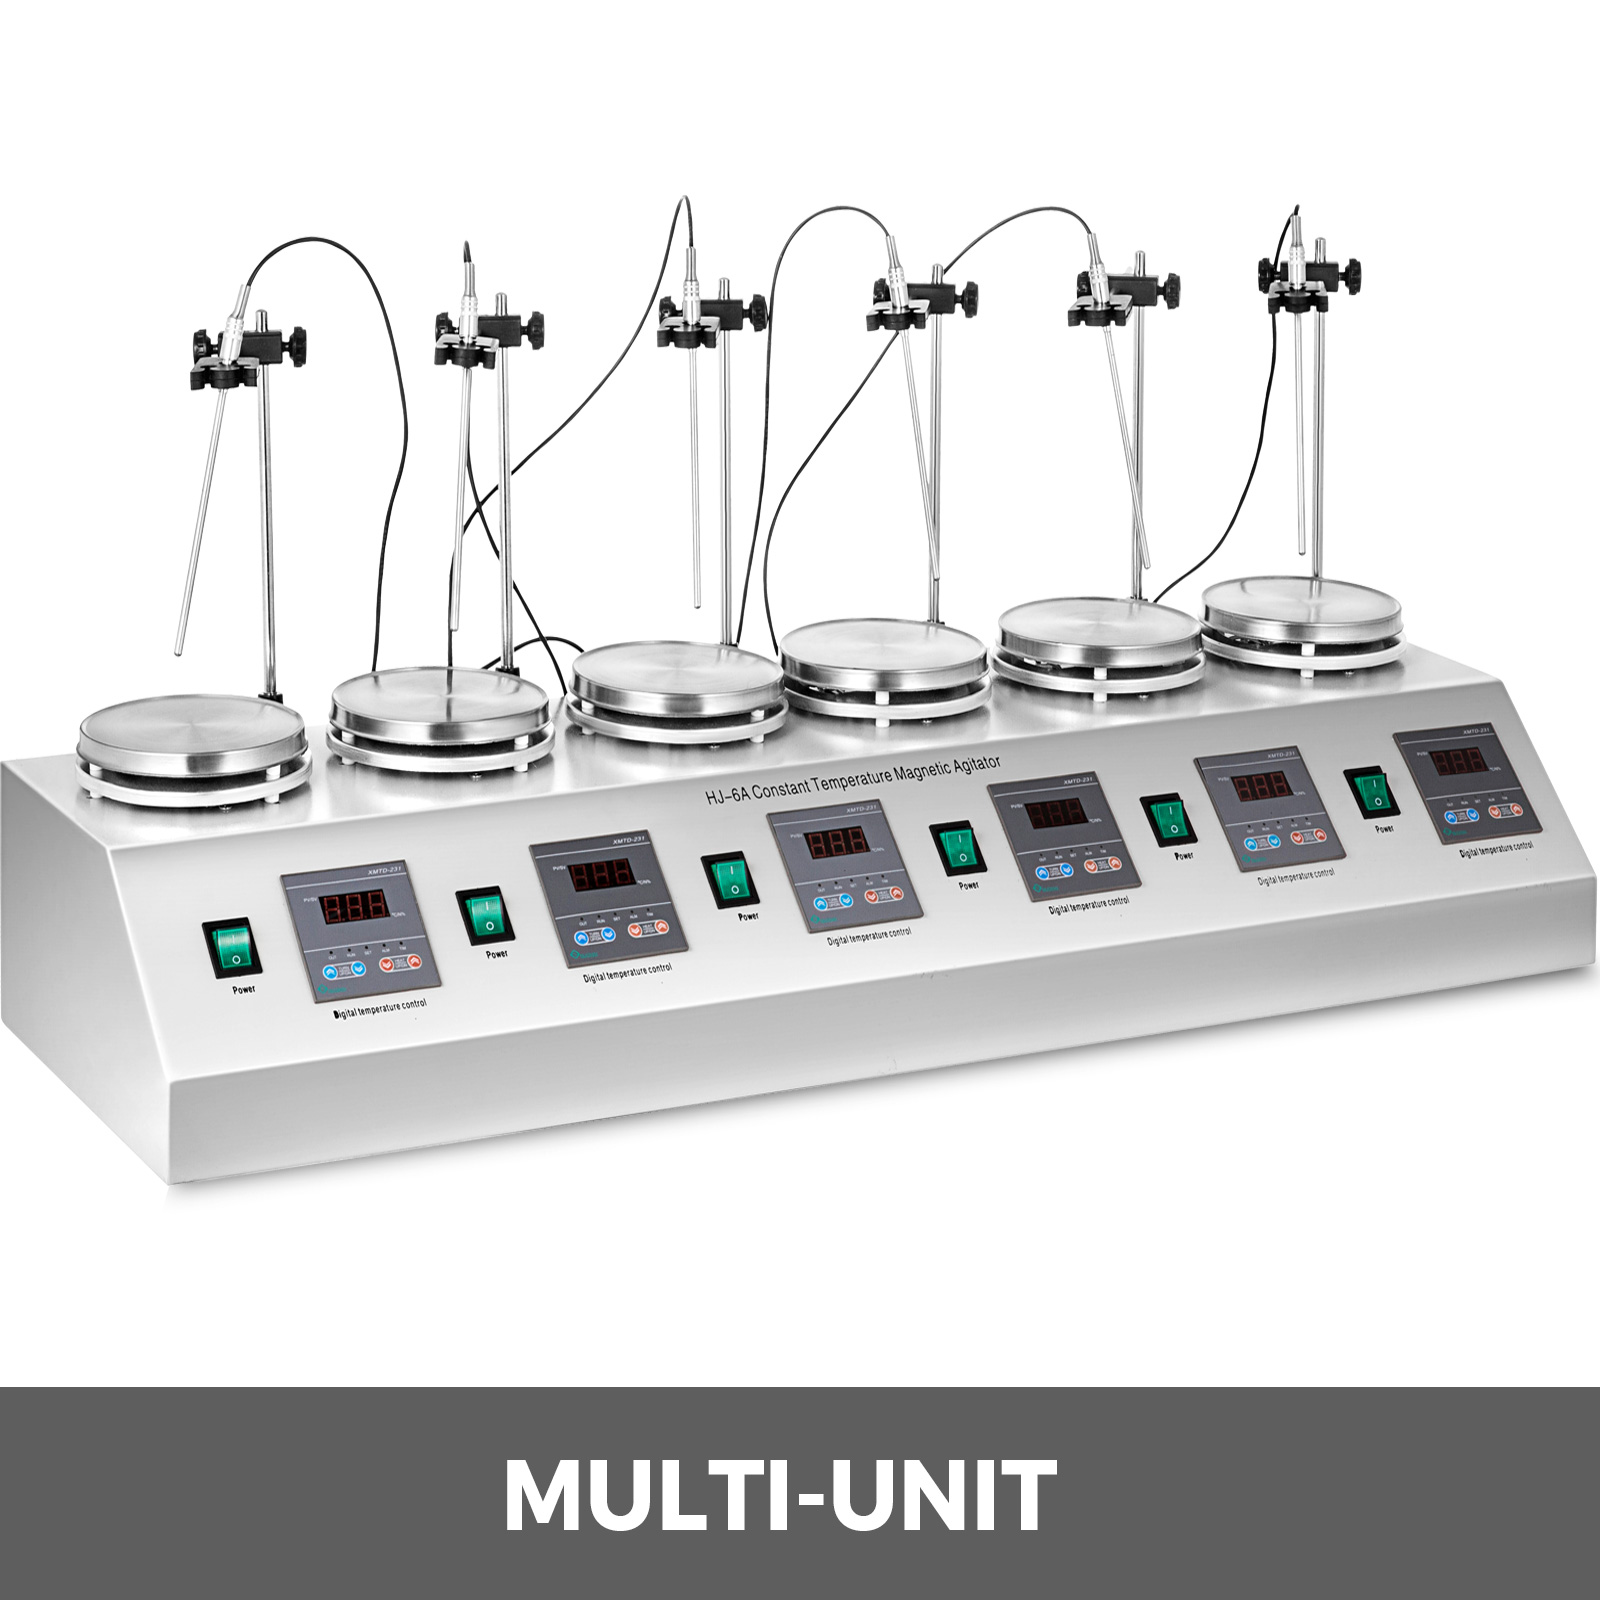 Magnetic stirrer,stainless steel,6 heads